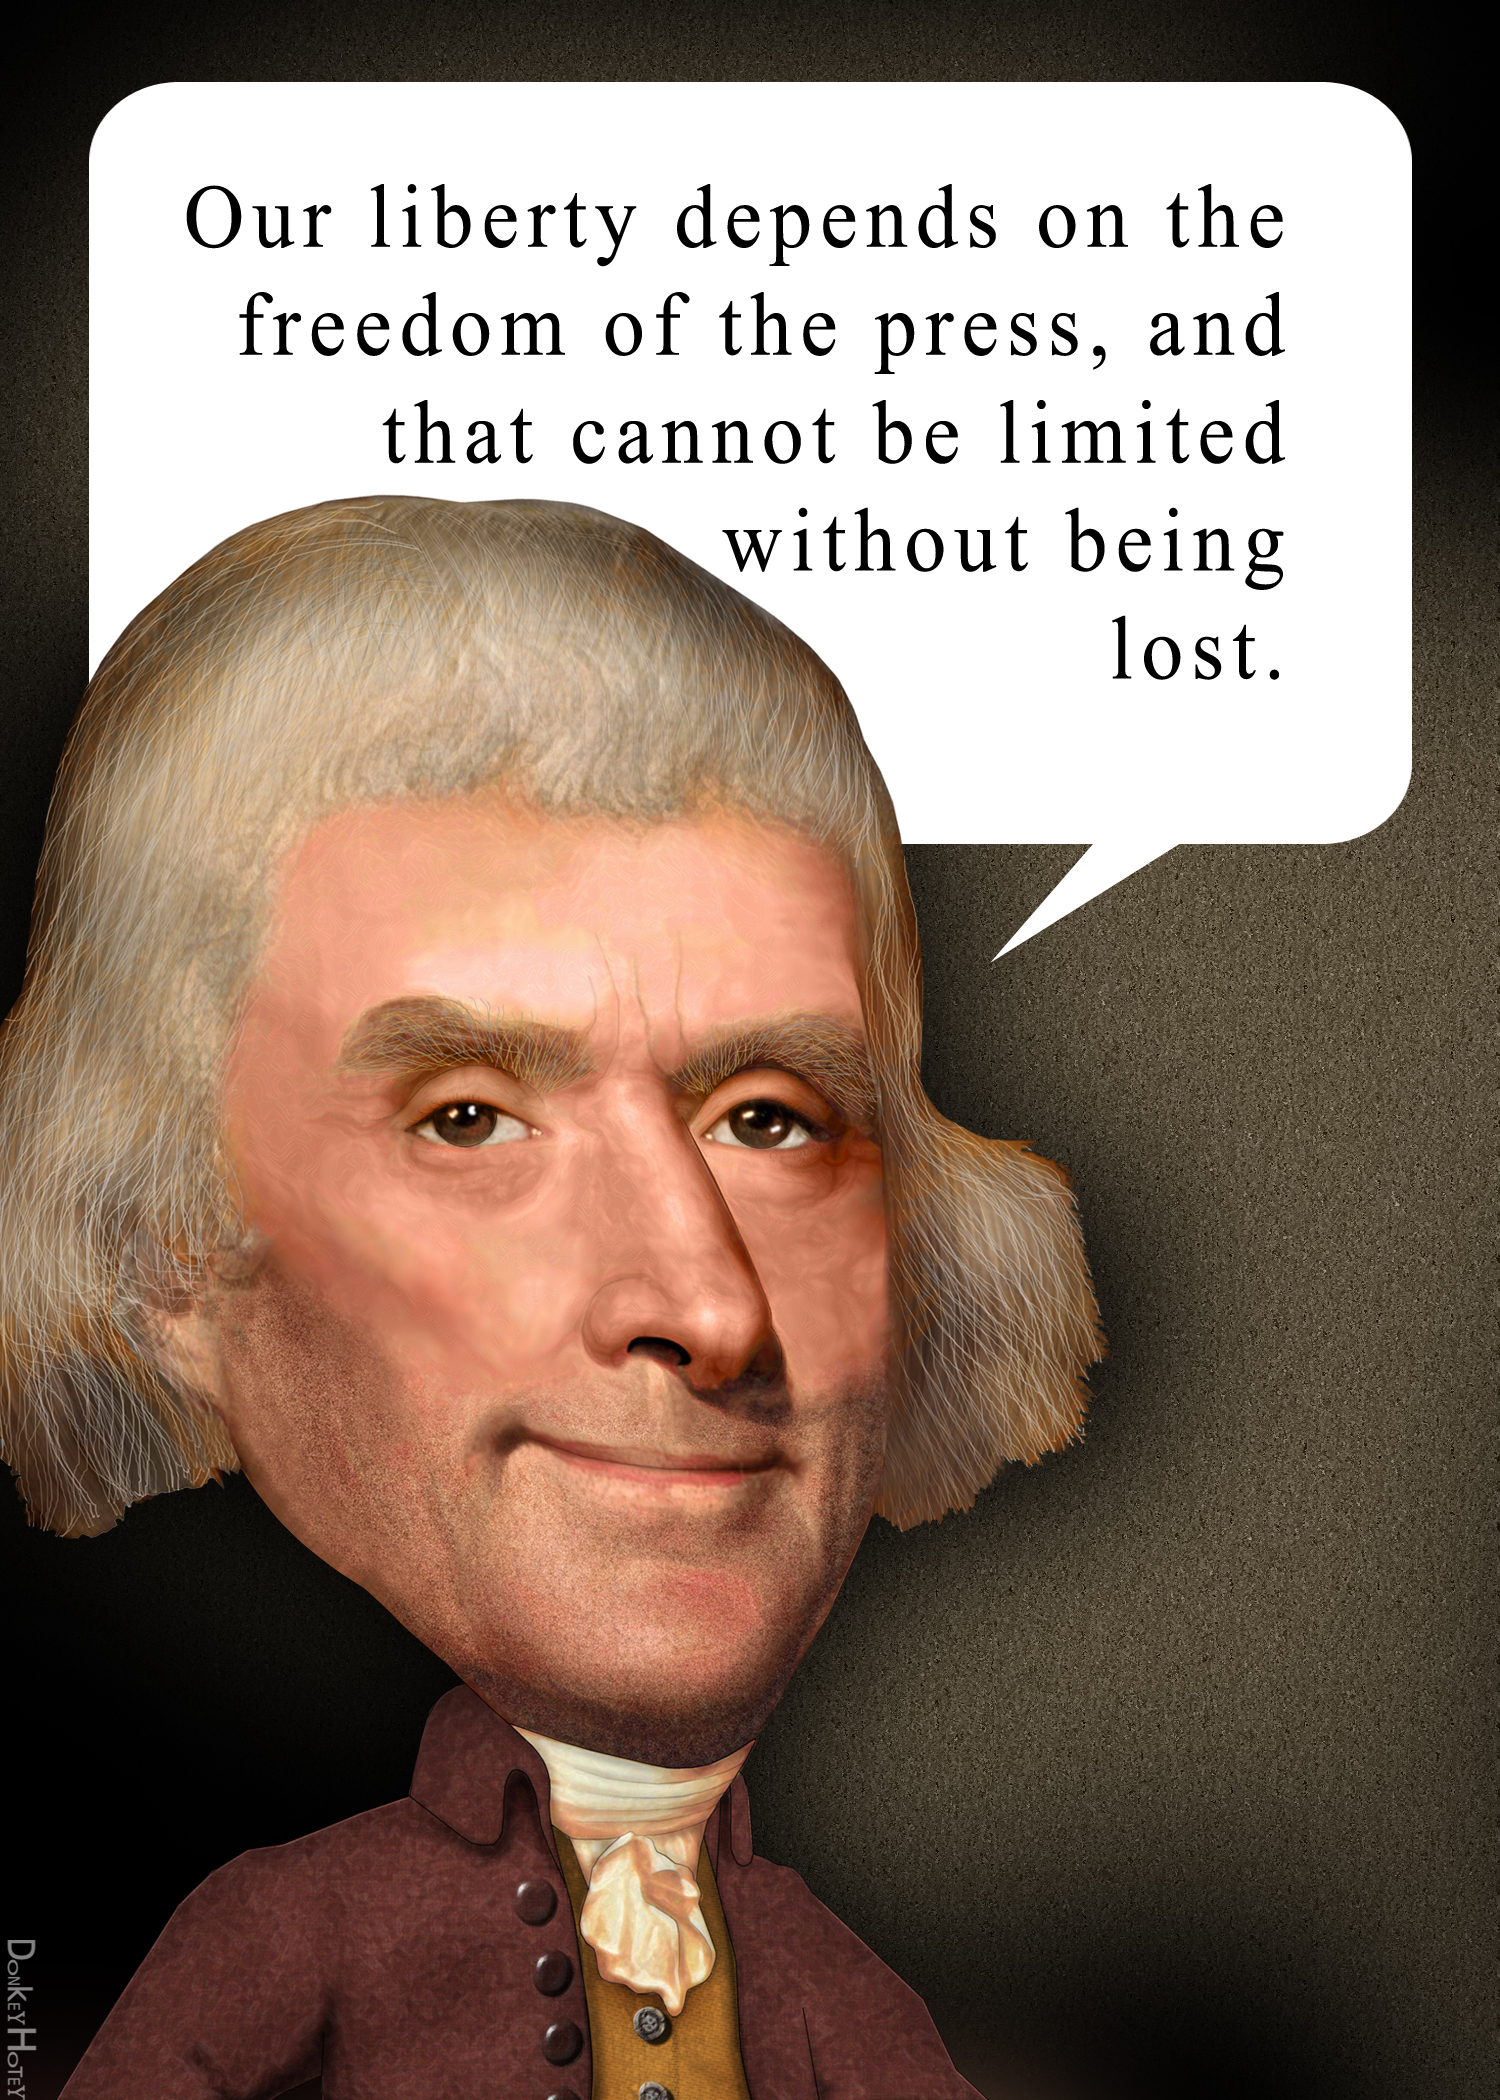 File:Thomas Jefferson freedom of speech quote.   Wikimedia Commons